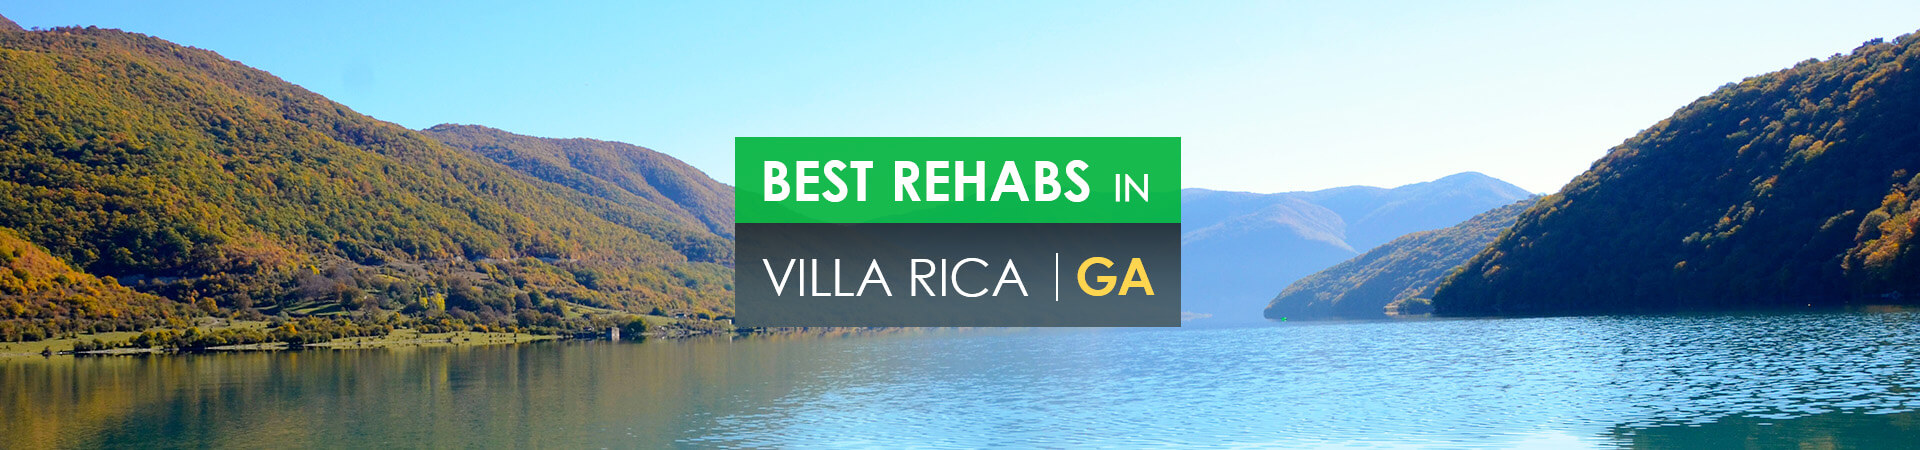 Best rehabs in Villa Rica, GA